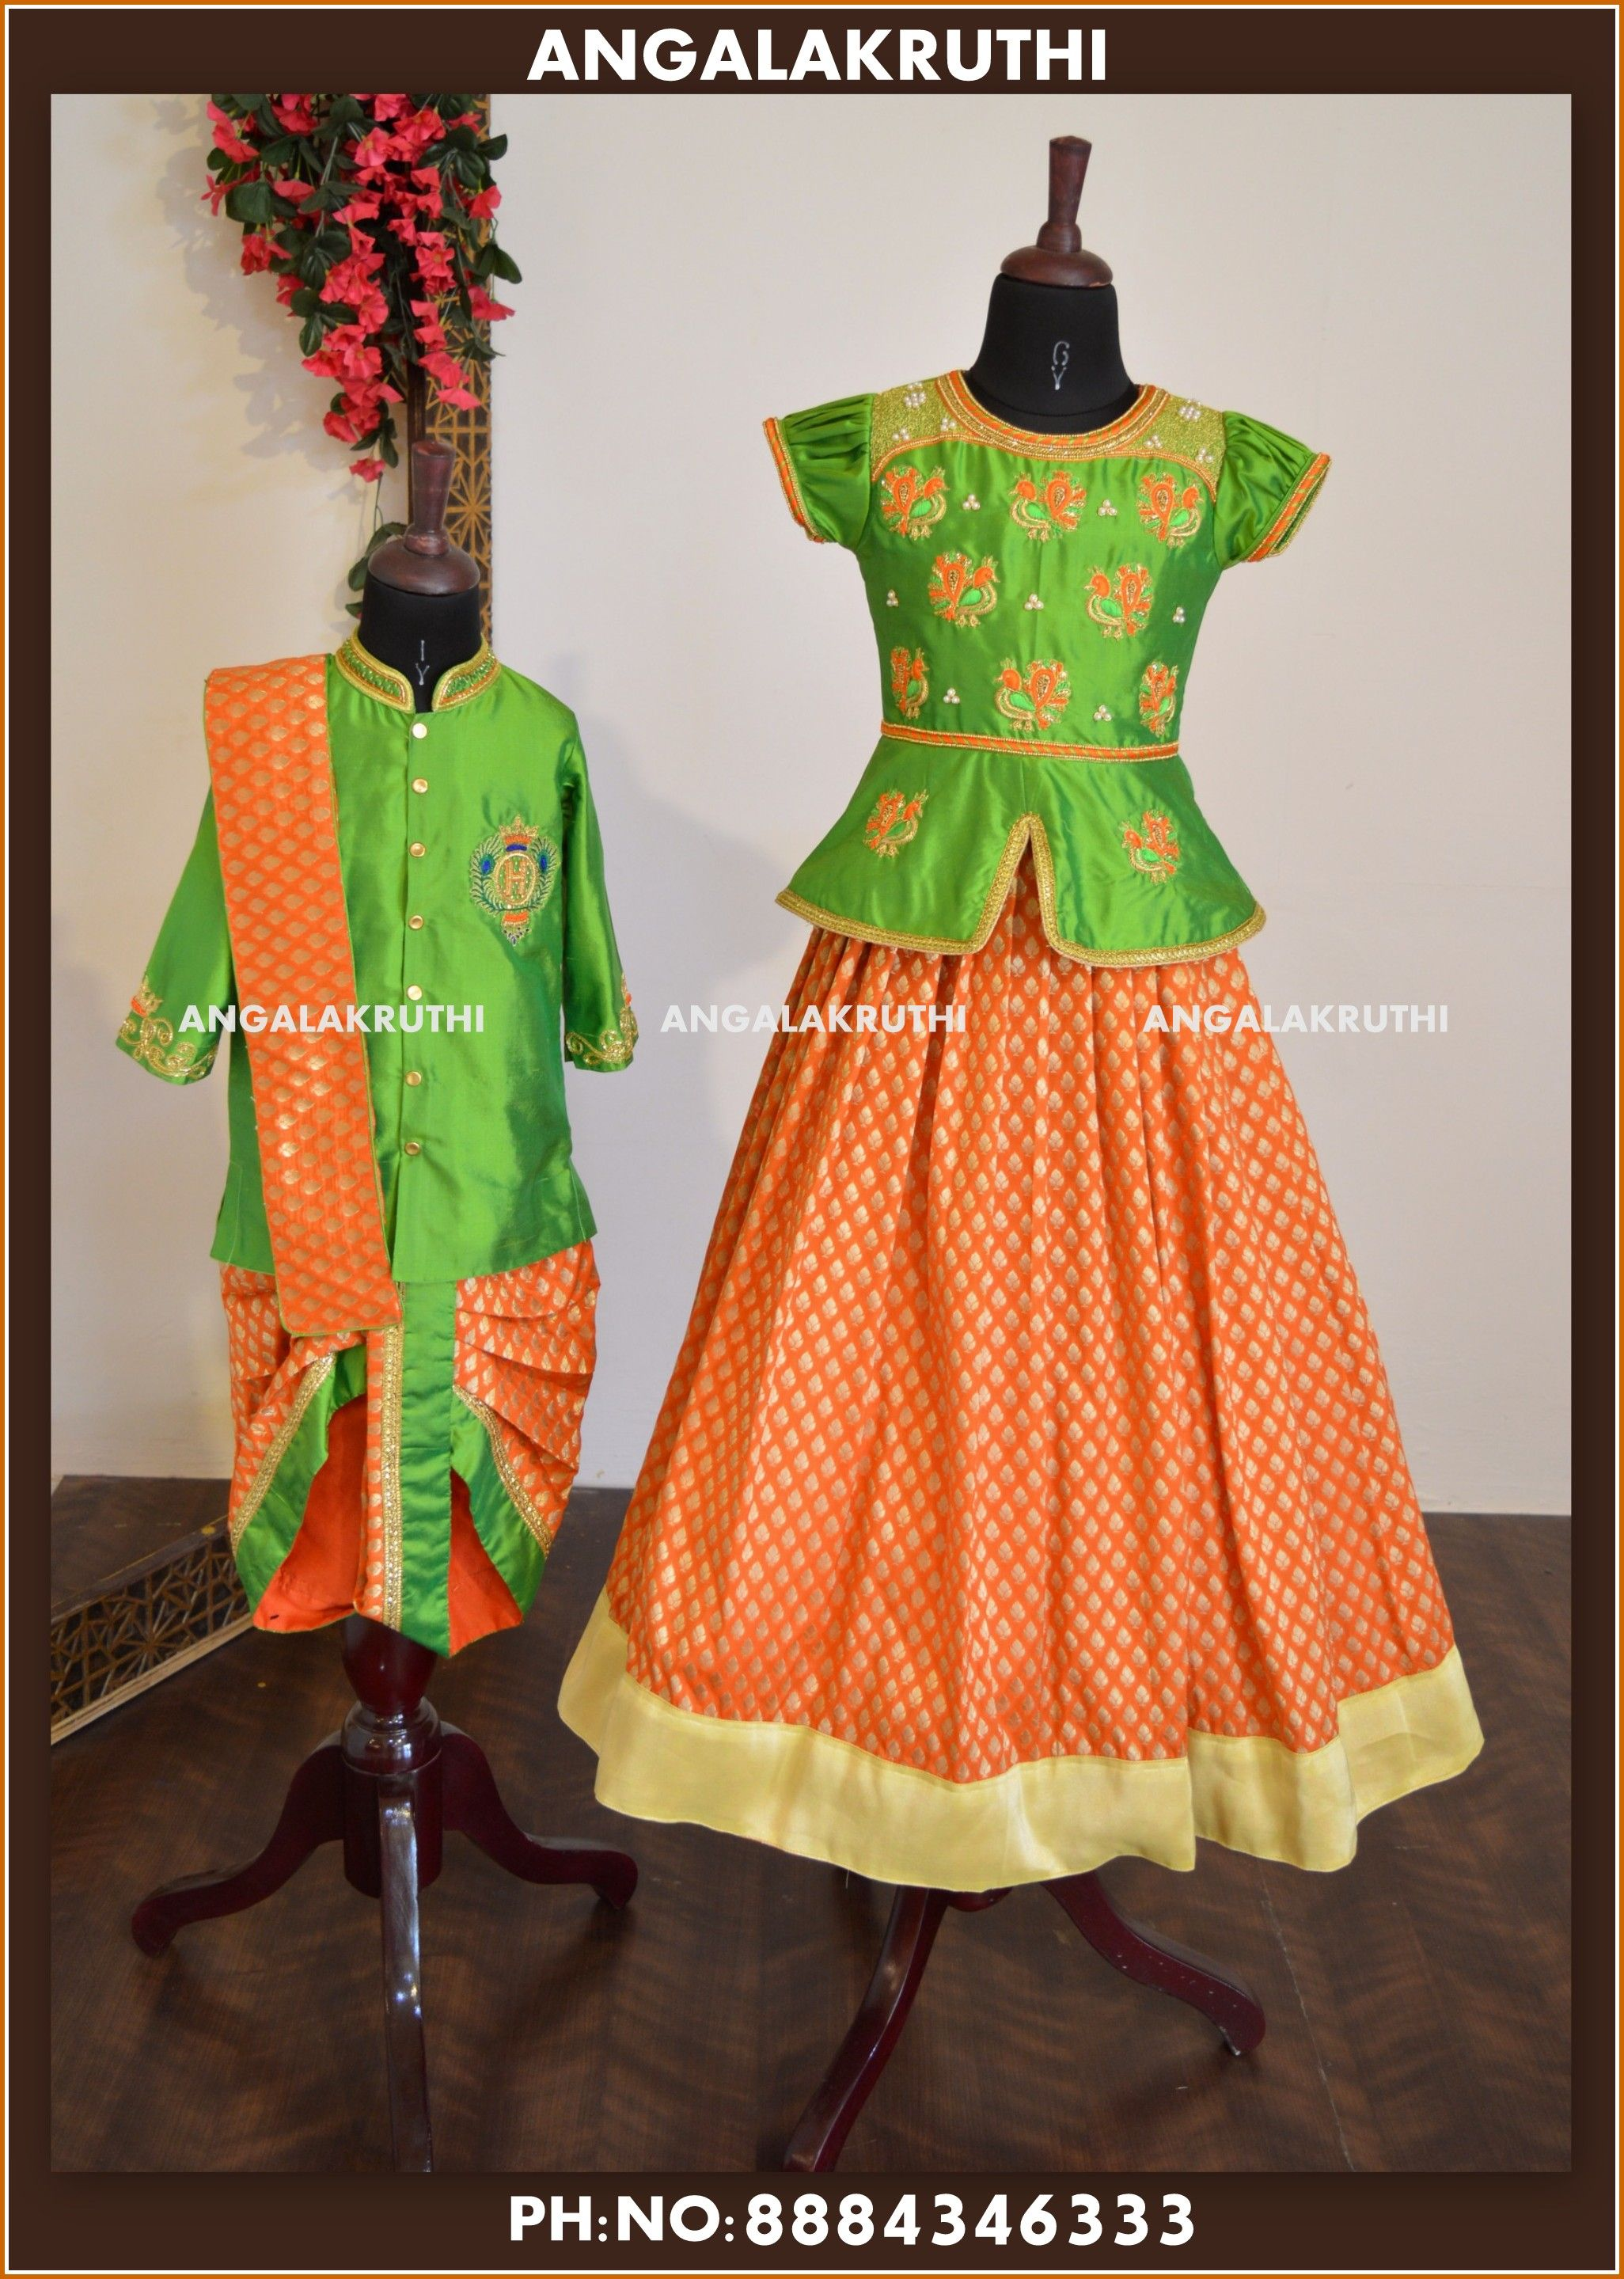 ab784bfb94 brother and sister matching dress designs by Angalakruthi boutique in  bangalore pure silk designs for kids pattu pavada